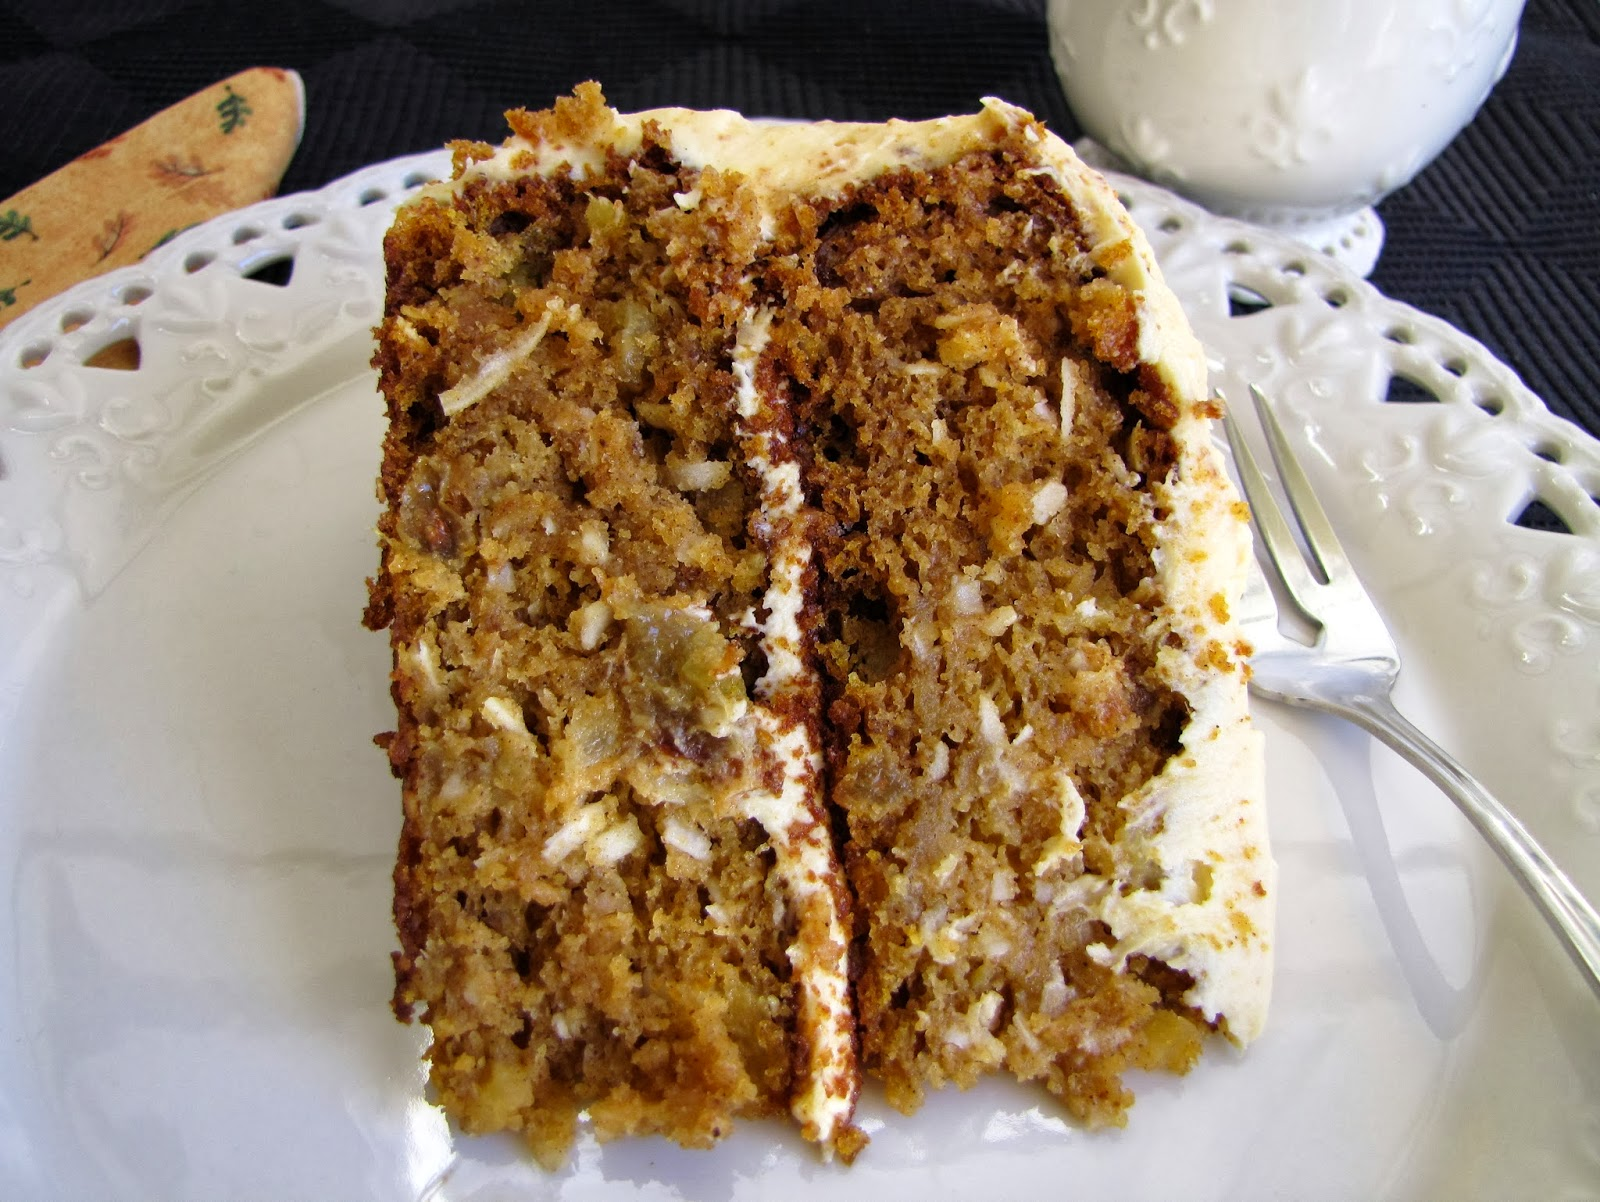 ... Girls Can Cook: Spiced Pumpkin Layer Cake with Cream Cheese Frosting